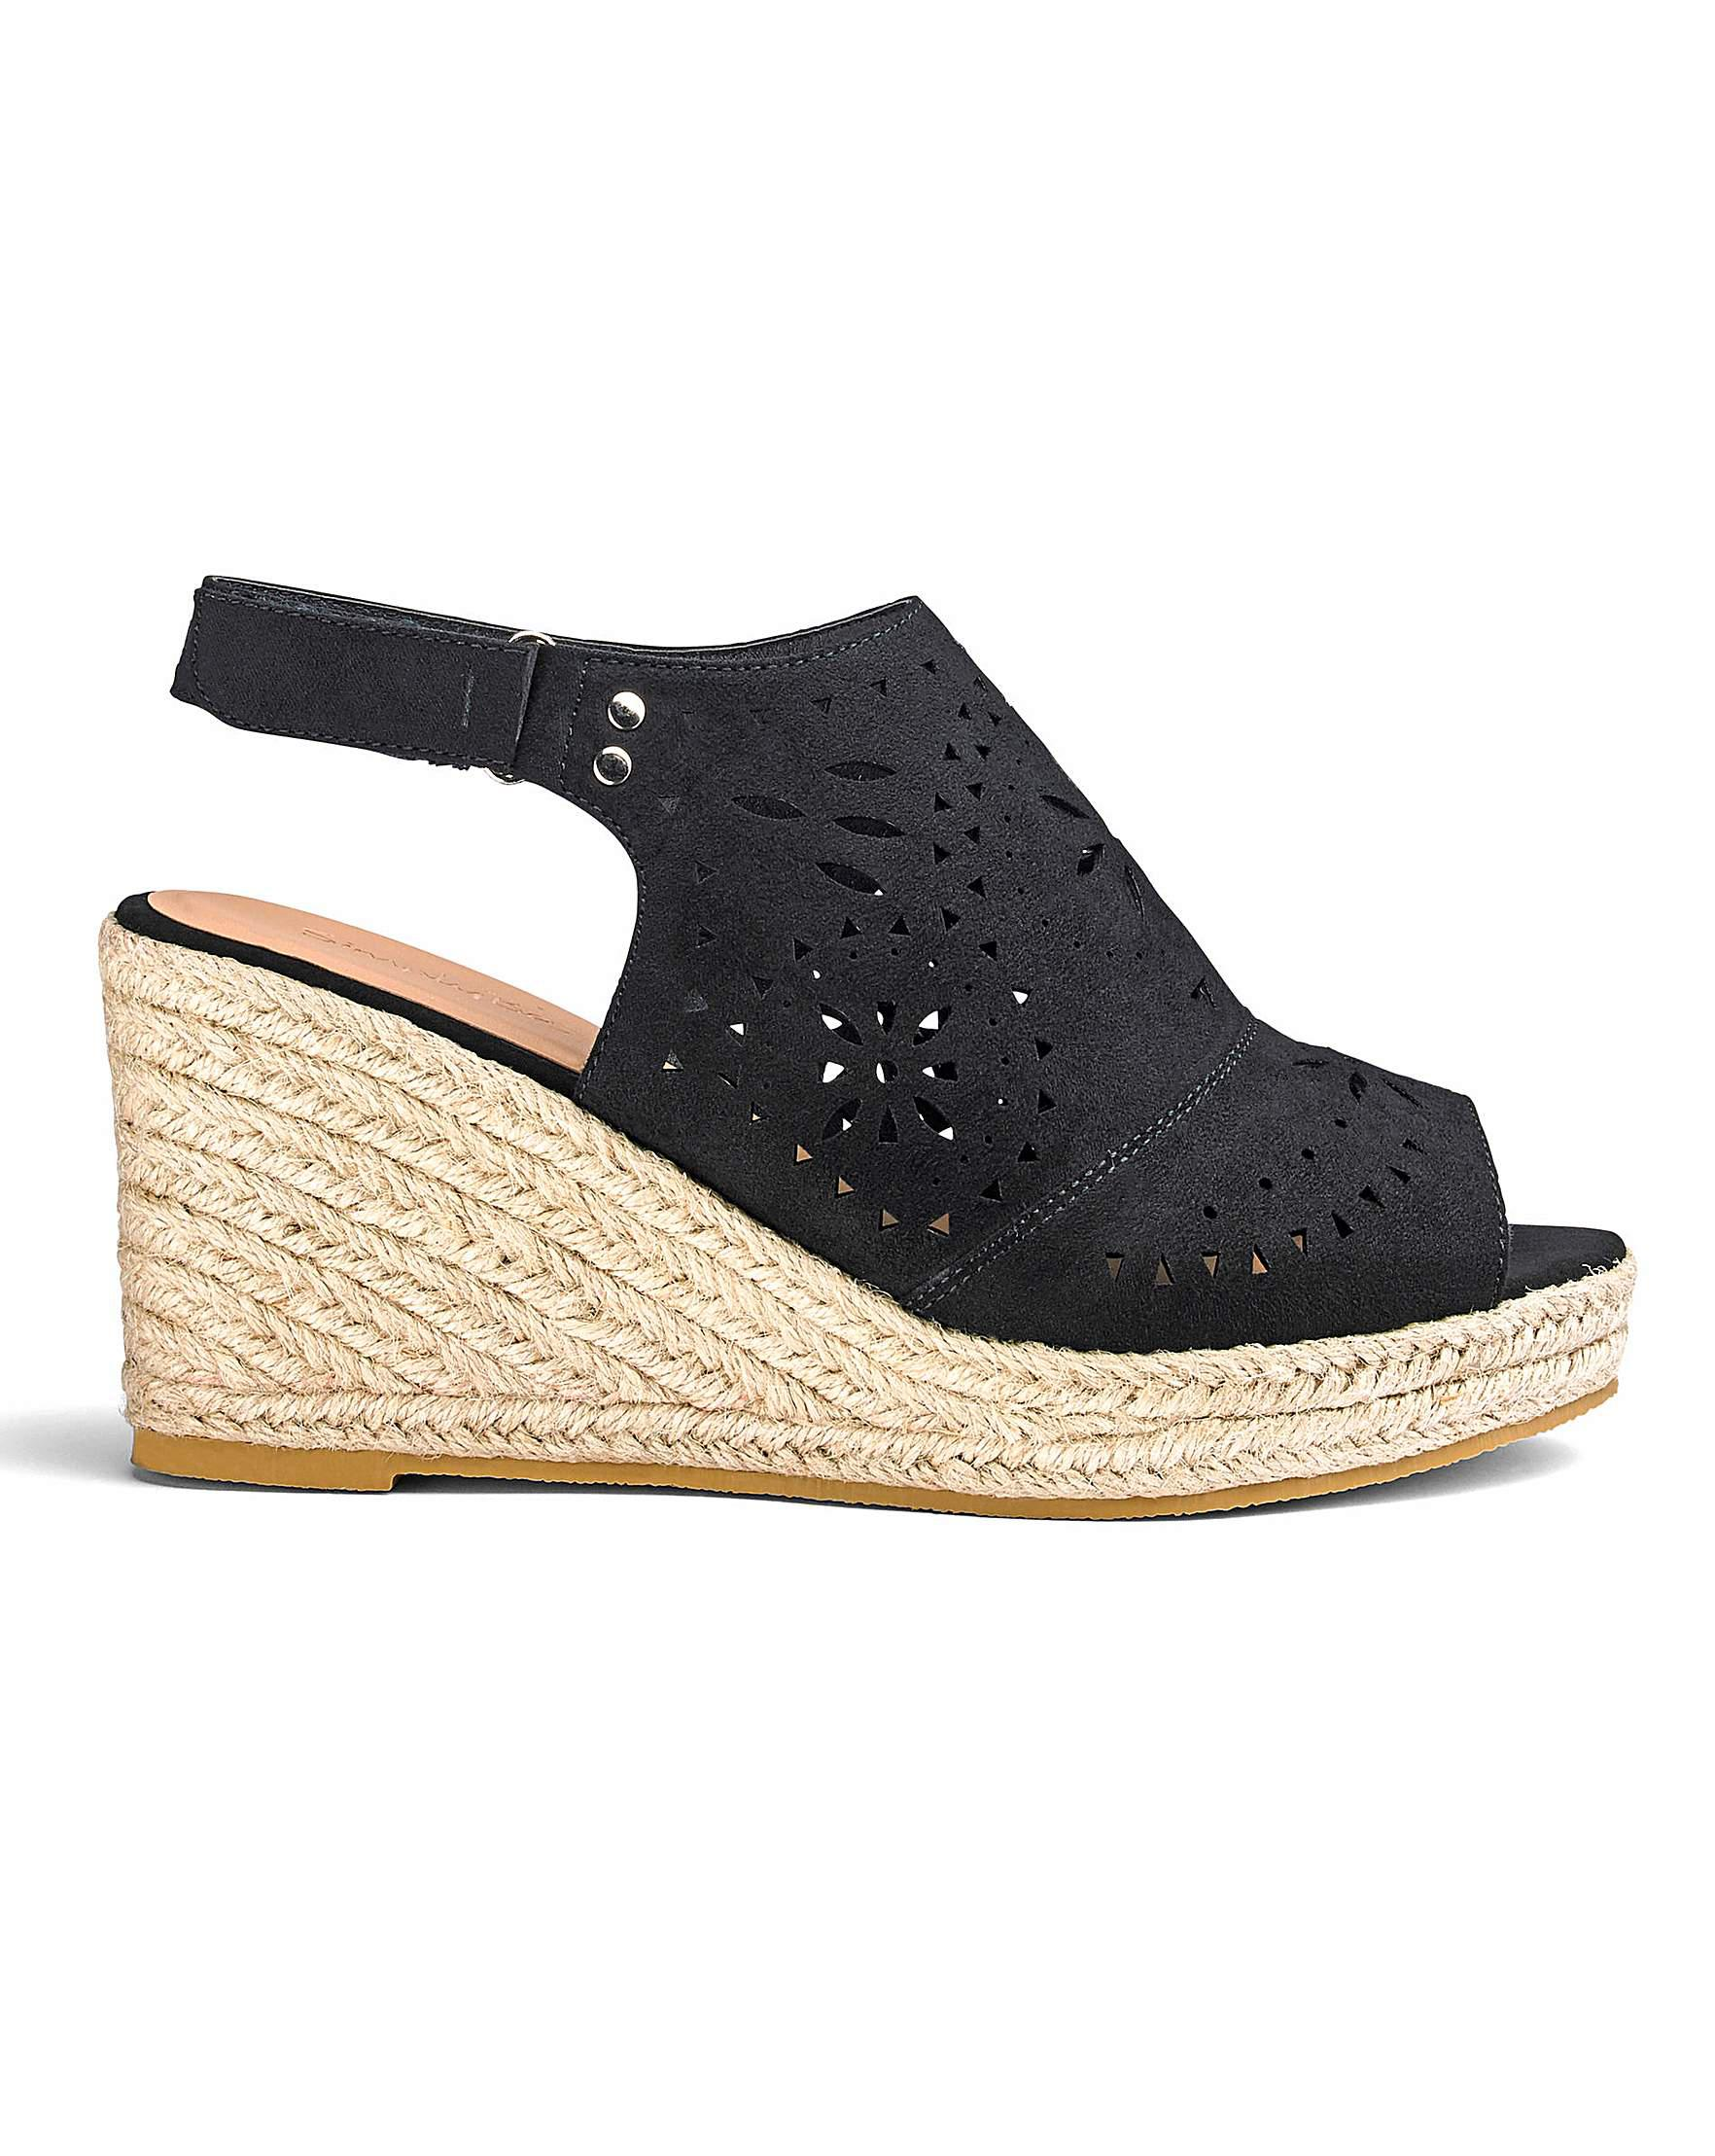 6c38faa6abfa Simply Be Elsa Cut Out Wedges Extra Wide Fit in Black - Lyst